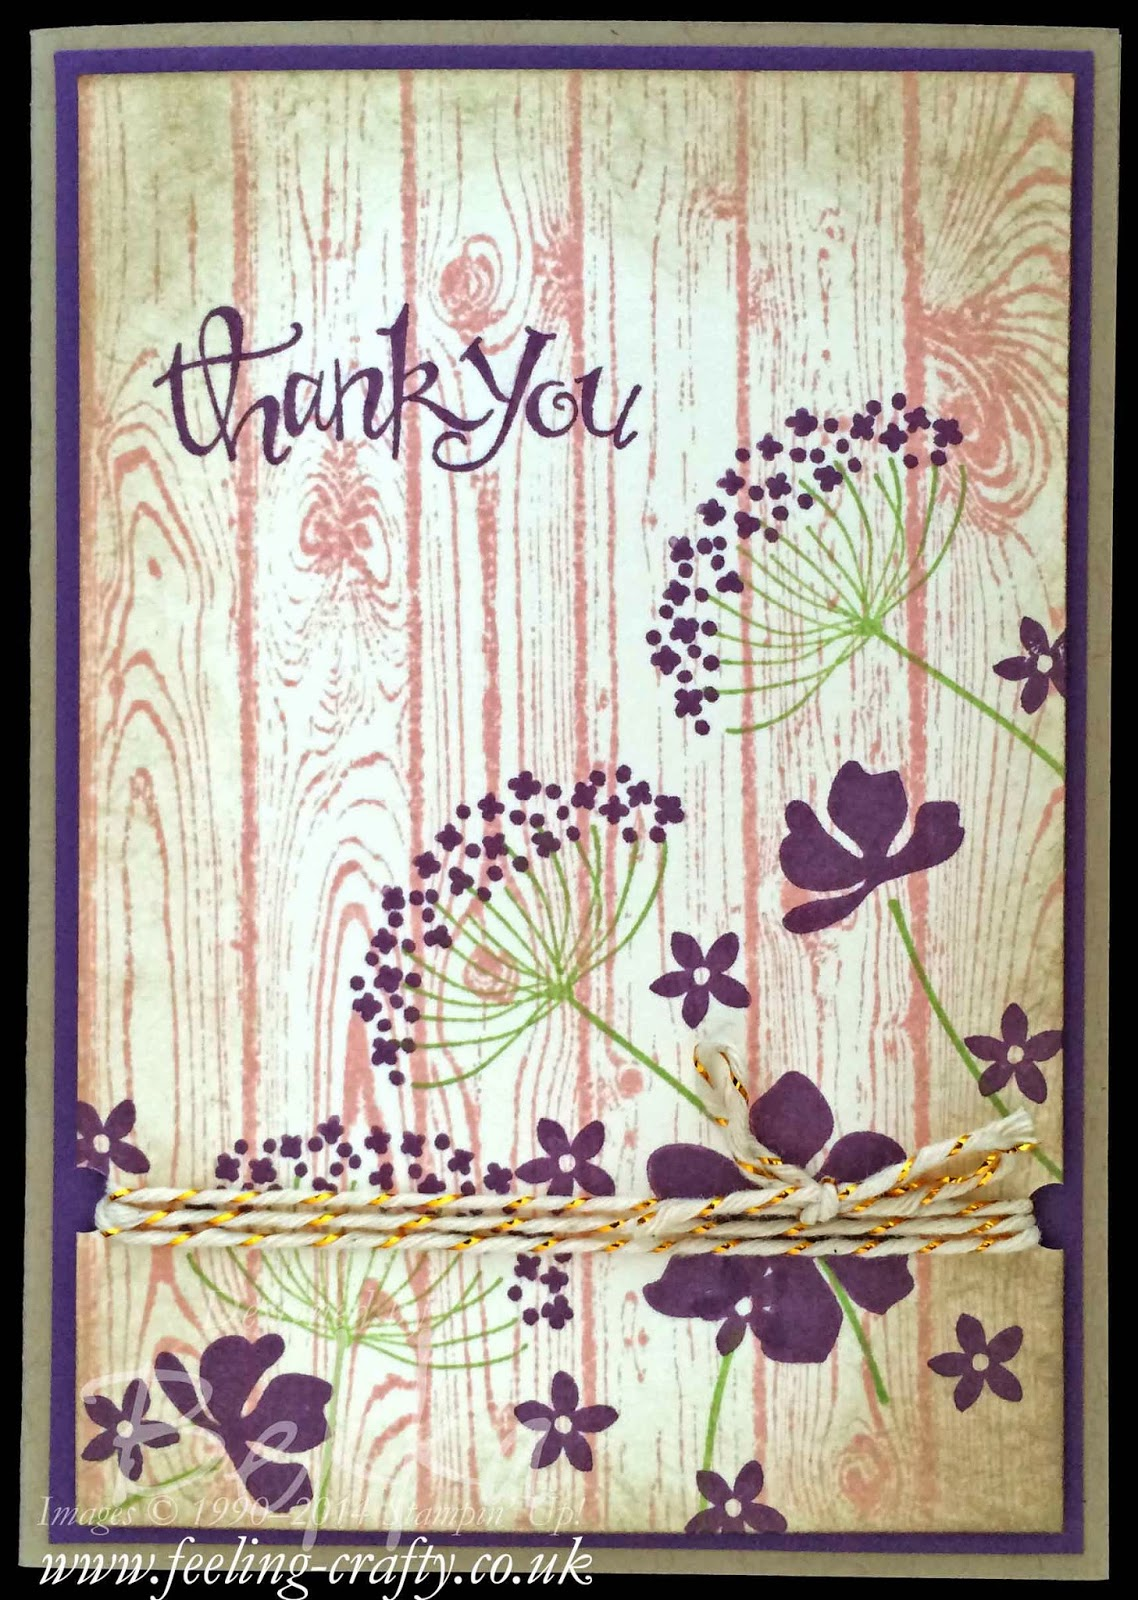 Thank You card featuring the Summer Silhouettes Stamp Set from Stammpin' Up! UK Independent Demonstrator Bekka - check her blog for lots of cute ideas